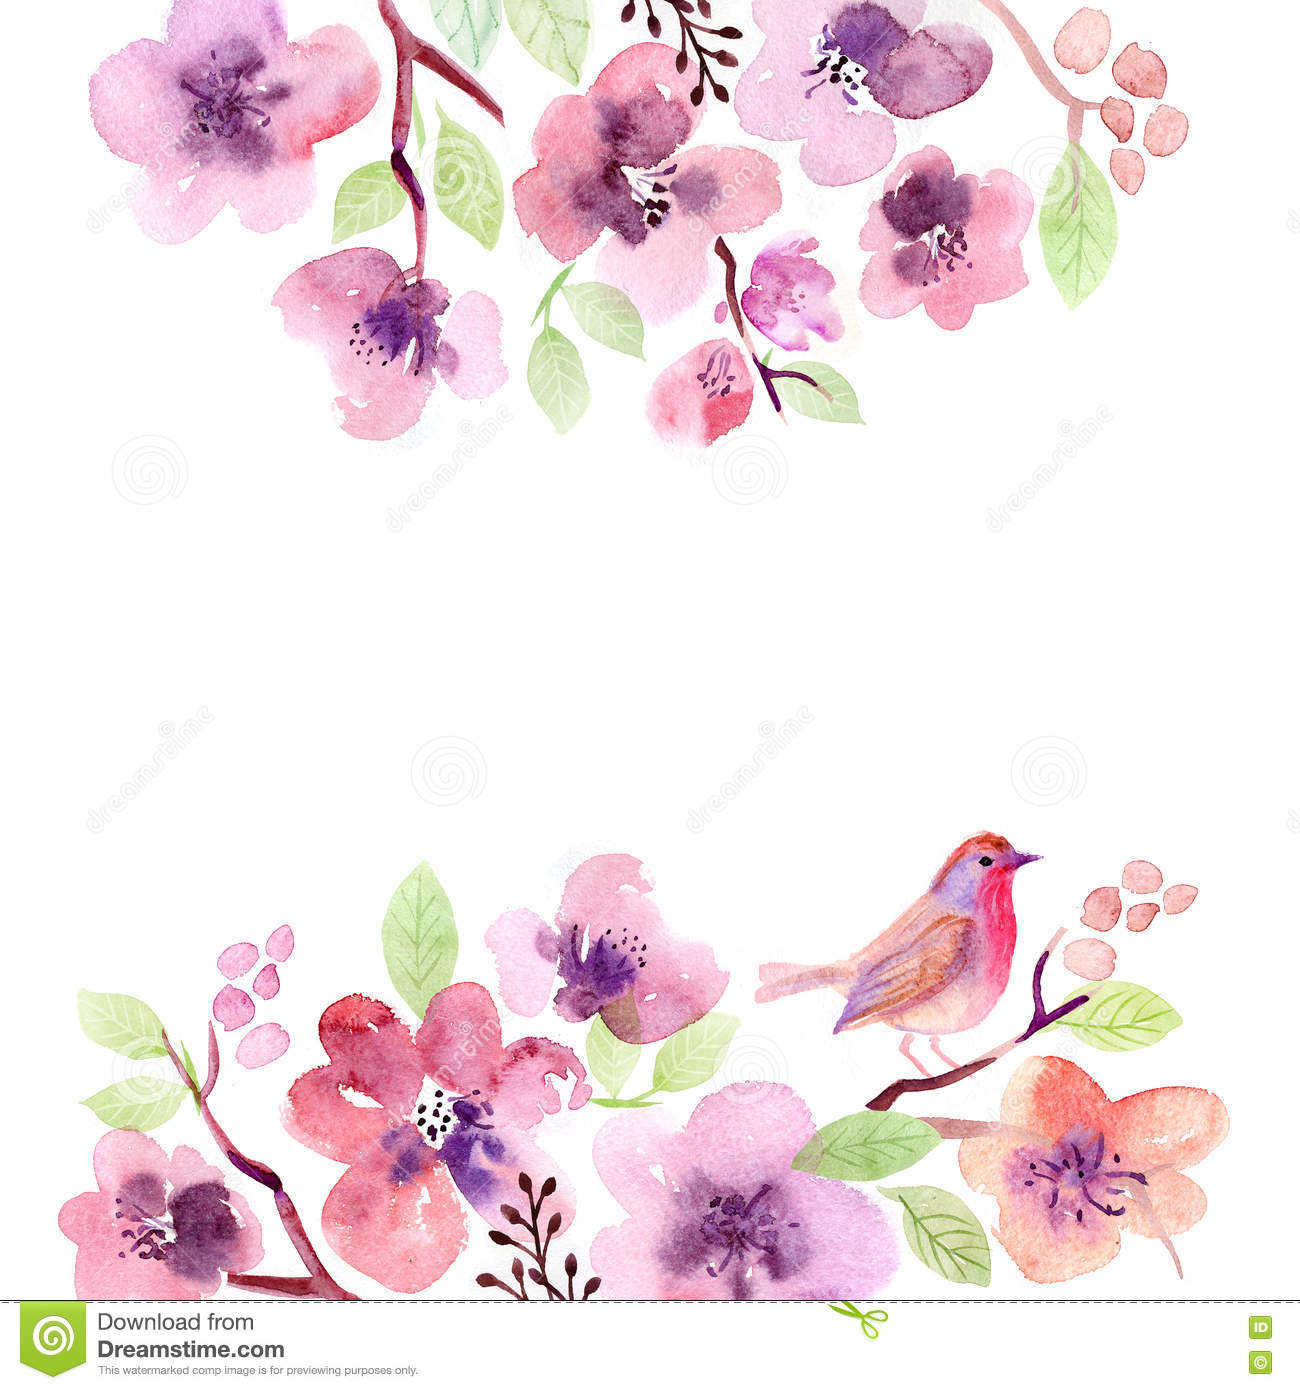 Greeting Card With Flowers Handmade Watercolor Painting Stock